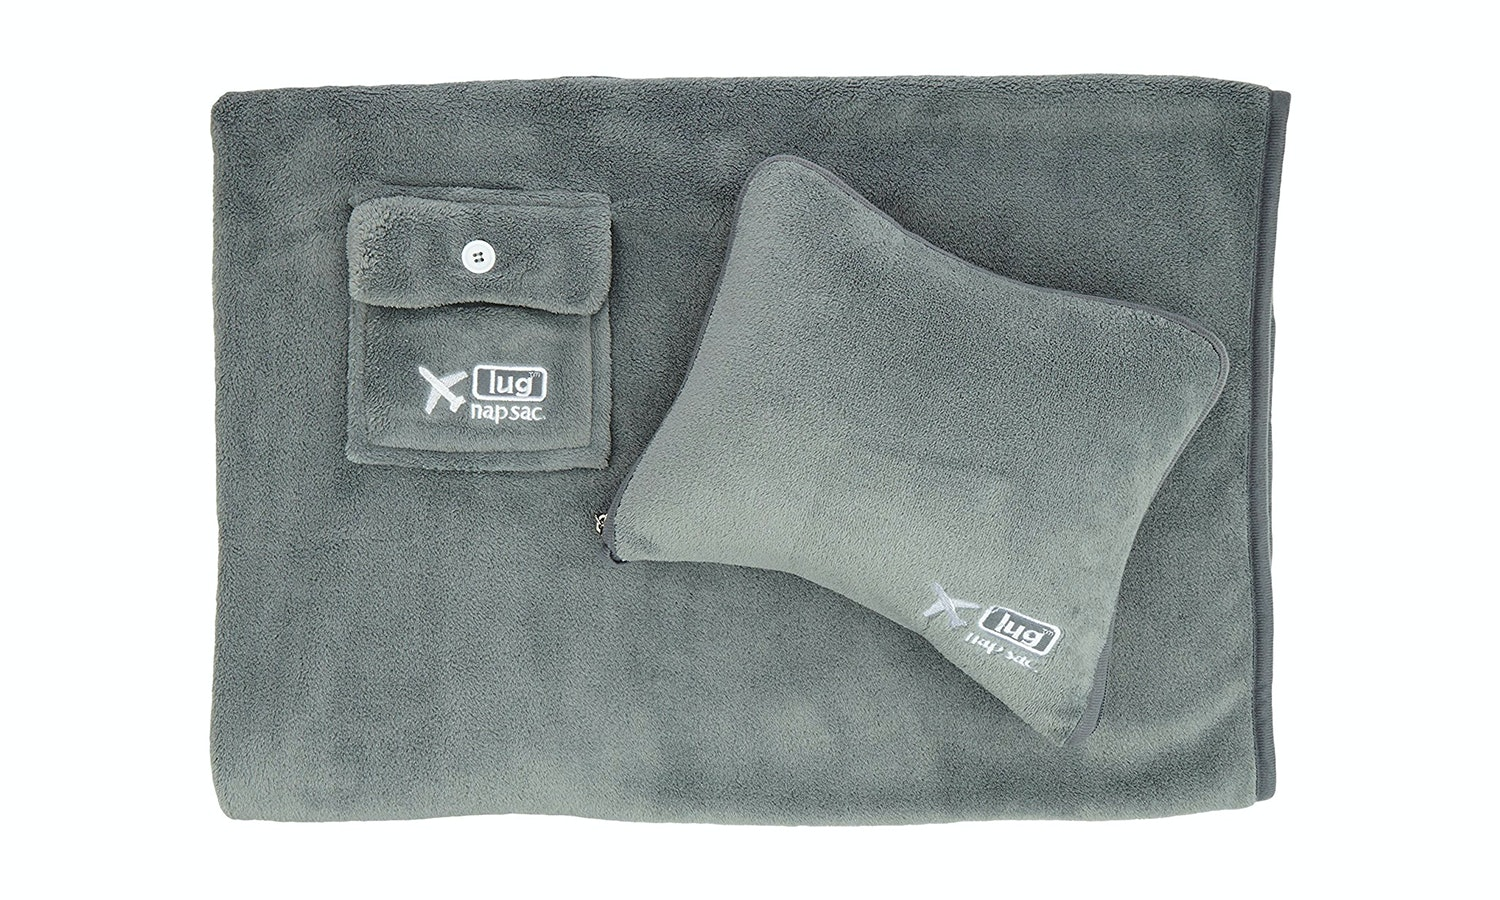 f284e2e562a5e The 7 Best Travel Blankets For An Airplane